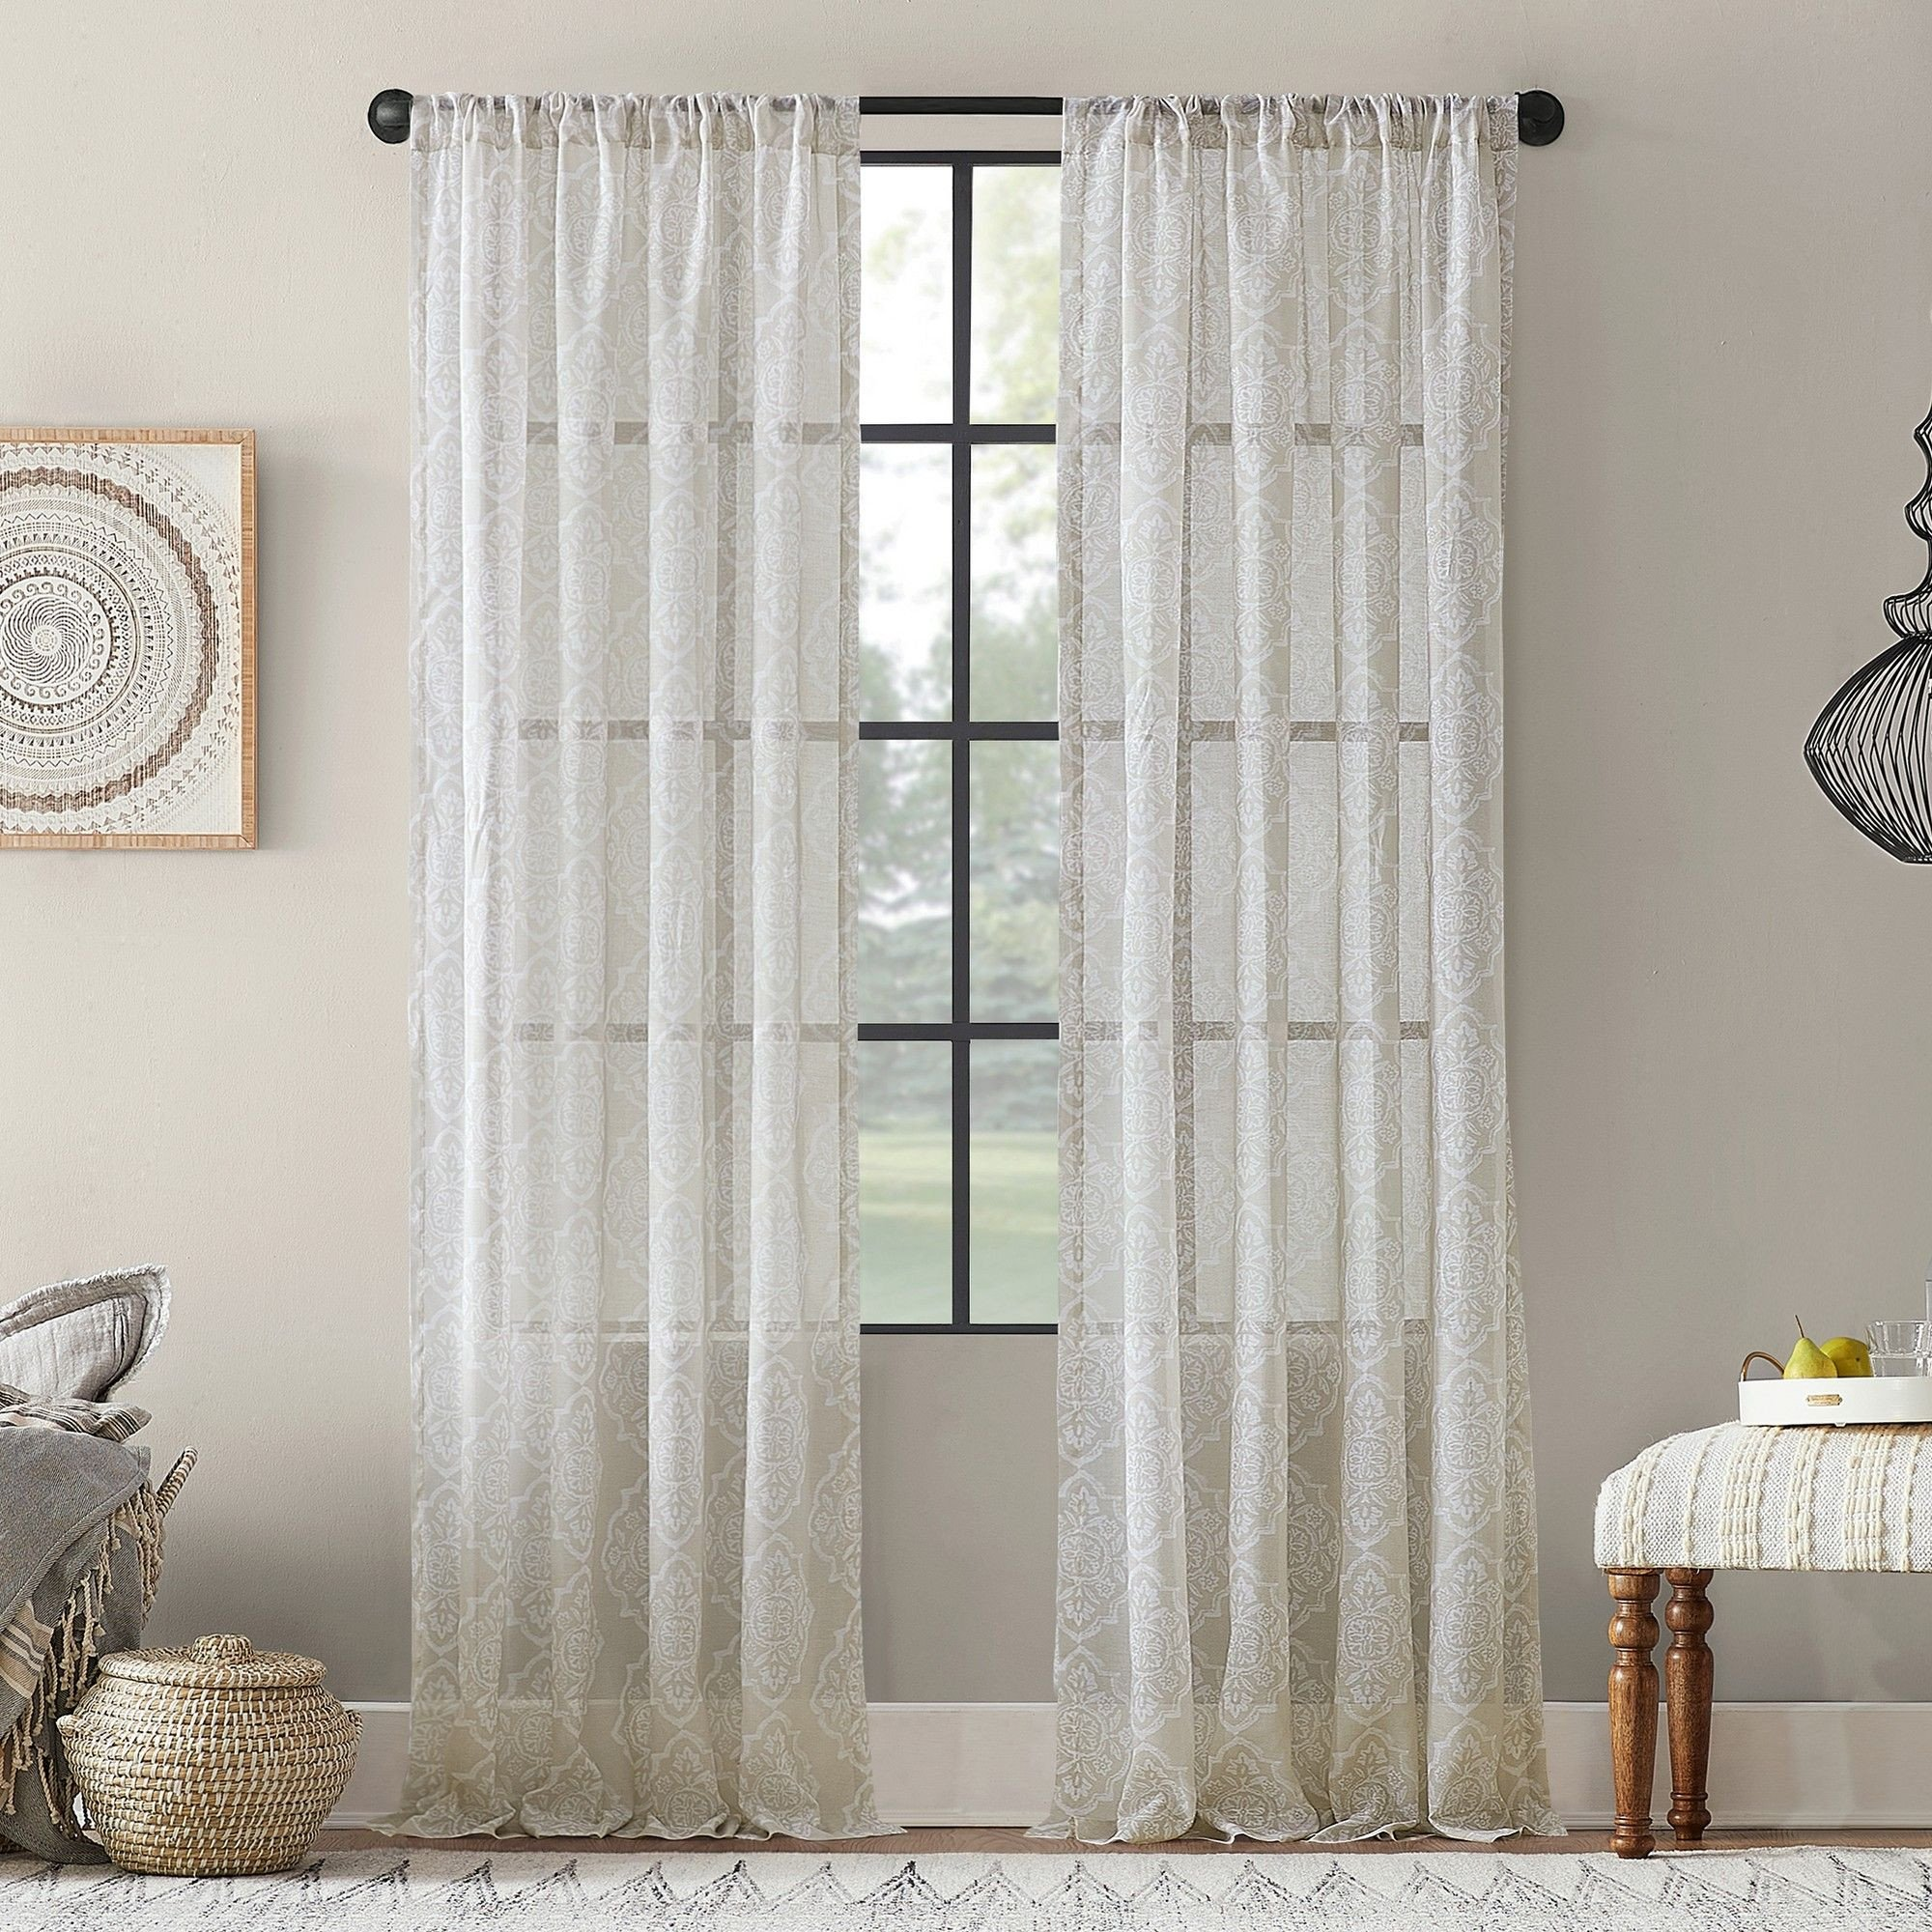 "Bedroom Curtains at Walmart Lovely 54""x63"" Global Block Textured Cotton Blend Sheer Curtain"